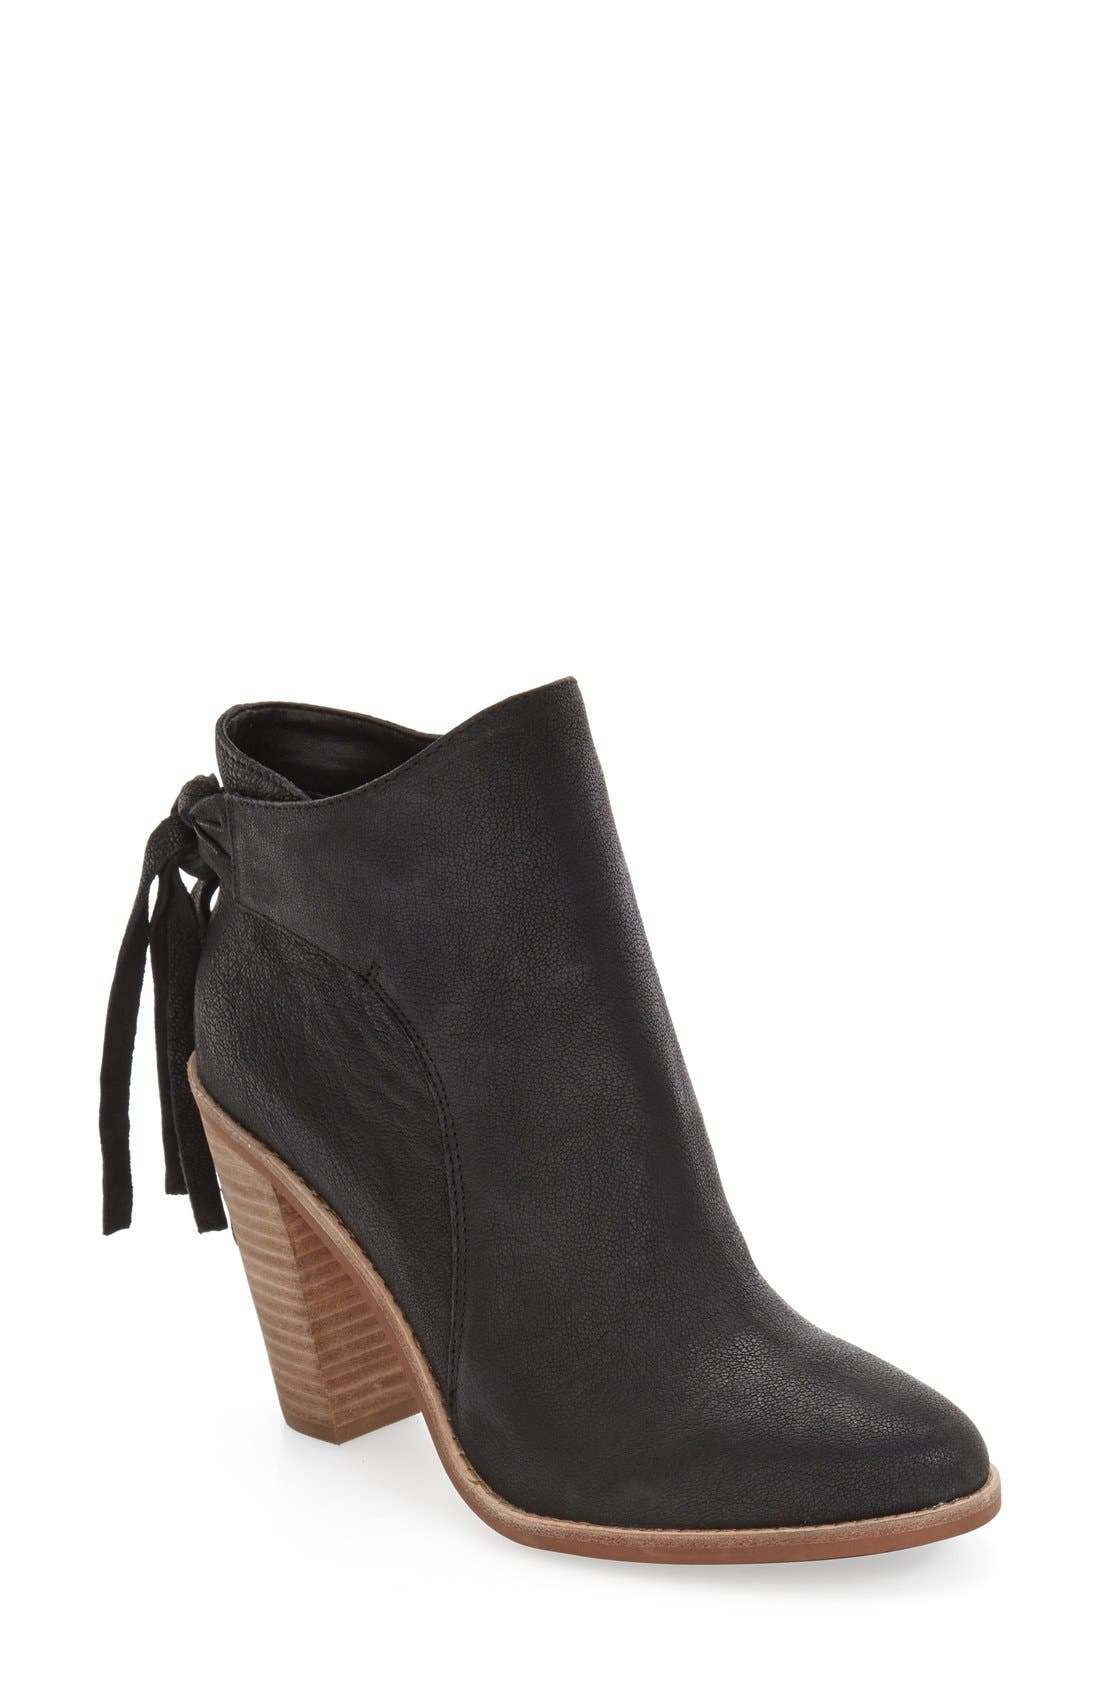 'Linford' Bootie,                             Main thumbnail 1, color,                             001